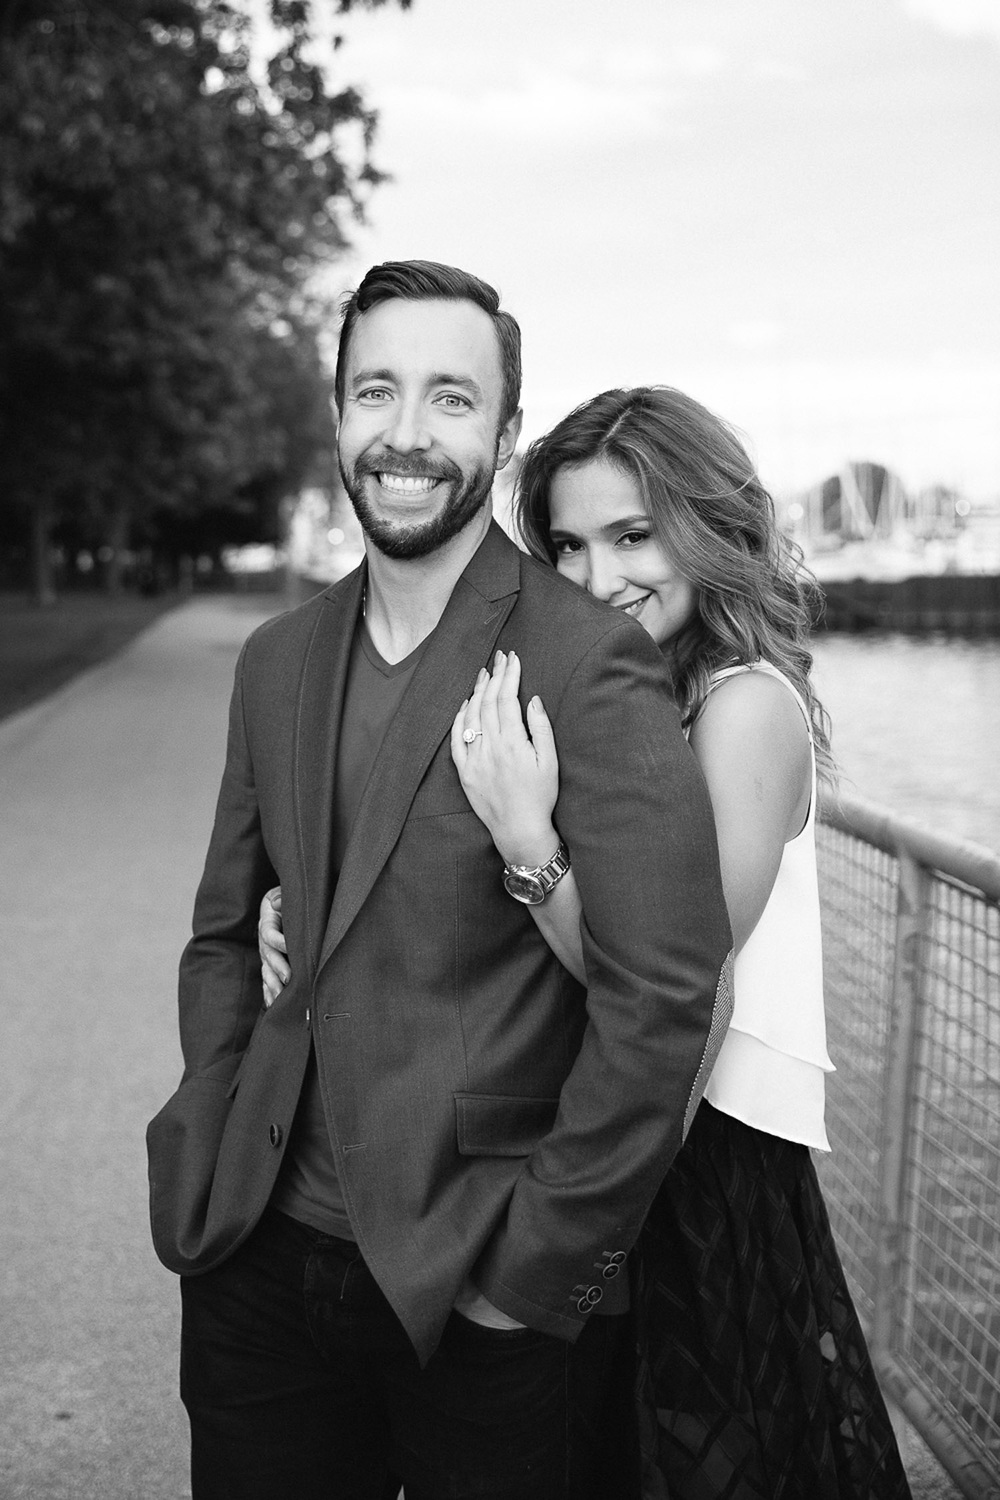 Toronto Engagement Photography by Frances Beatty